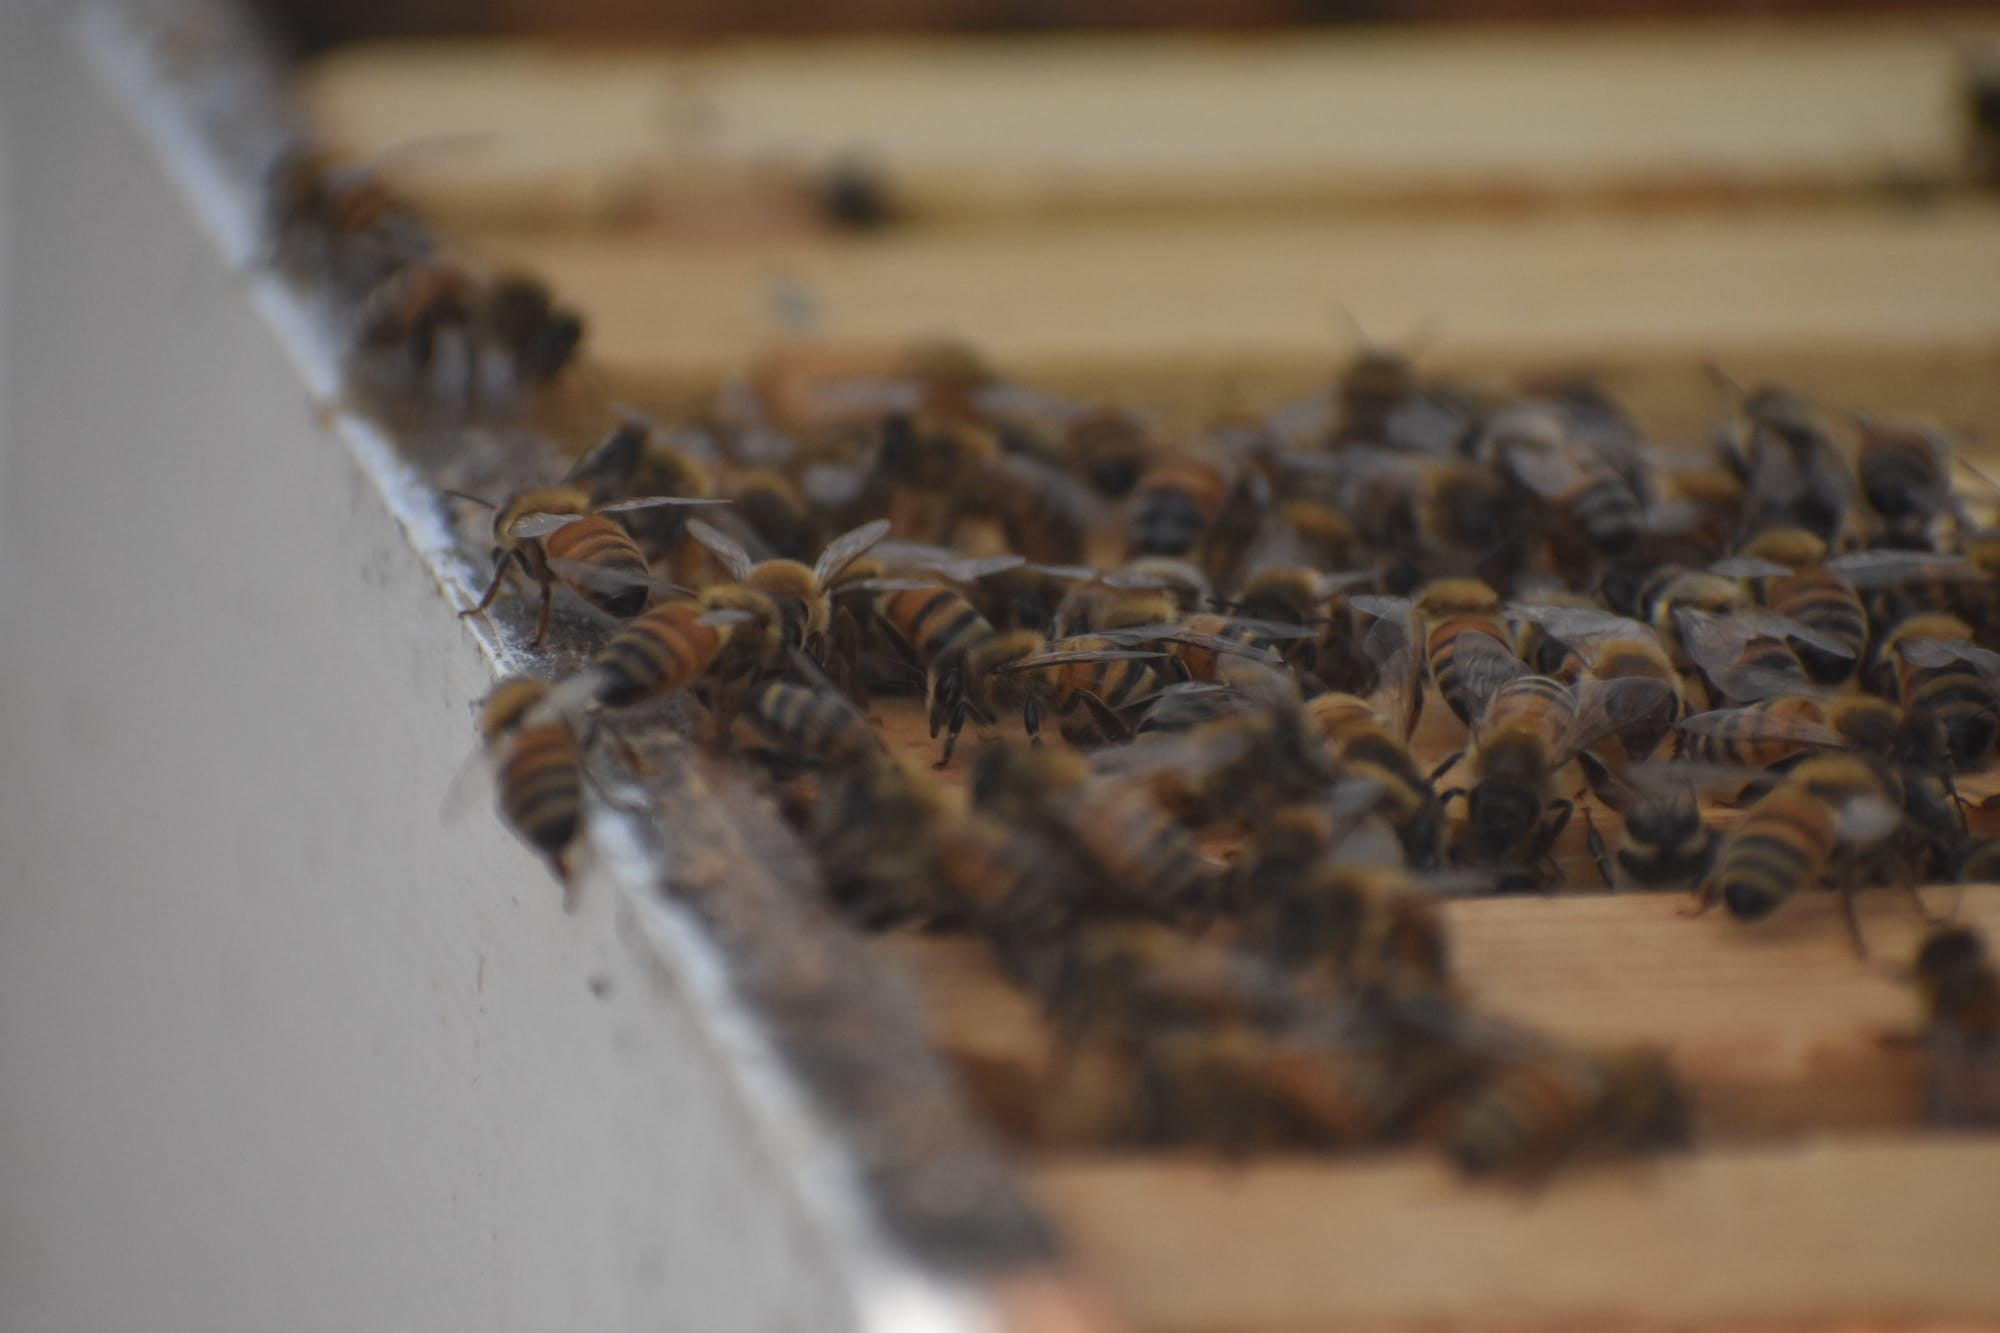 Keeping It Local: How a student became a beekeeper and how beekeeping impacts Auburn ecology